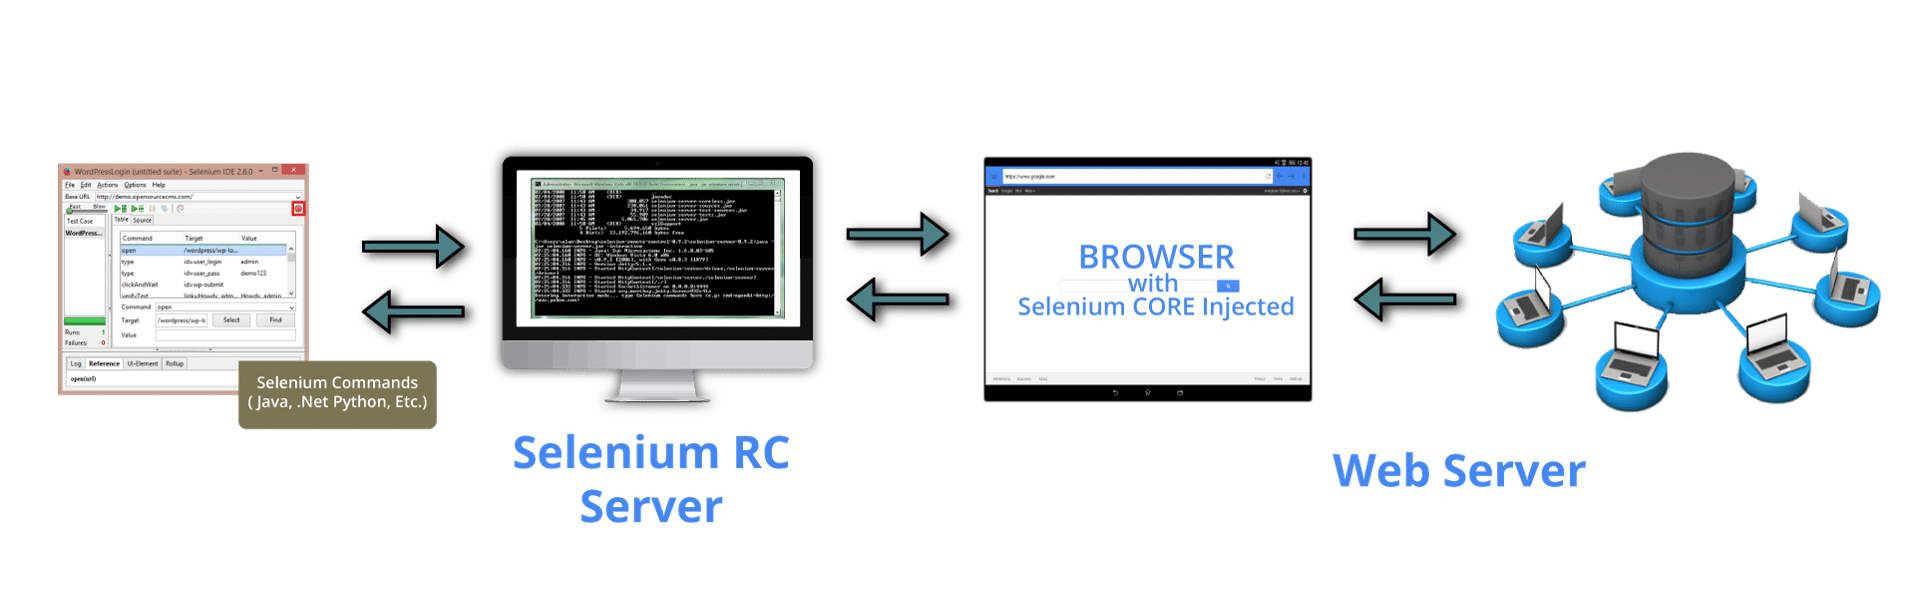 rc architecture - selenium tutorial